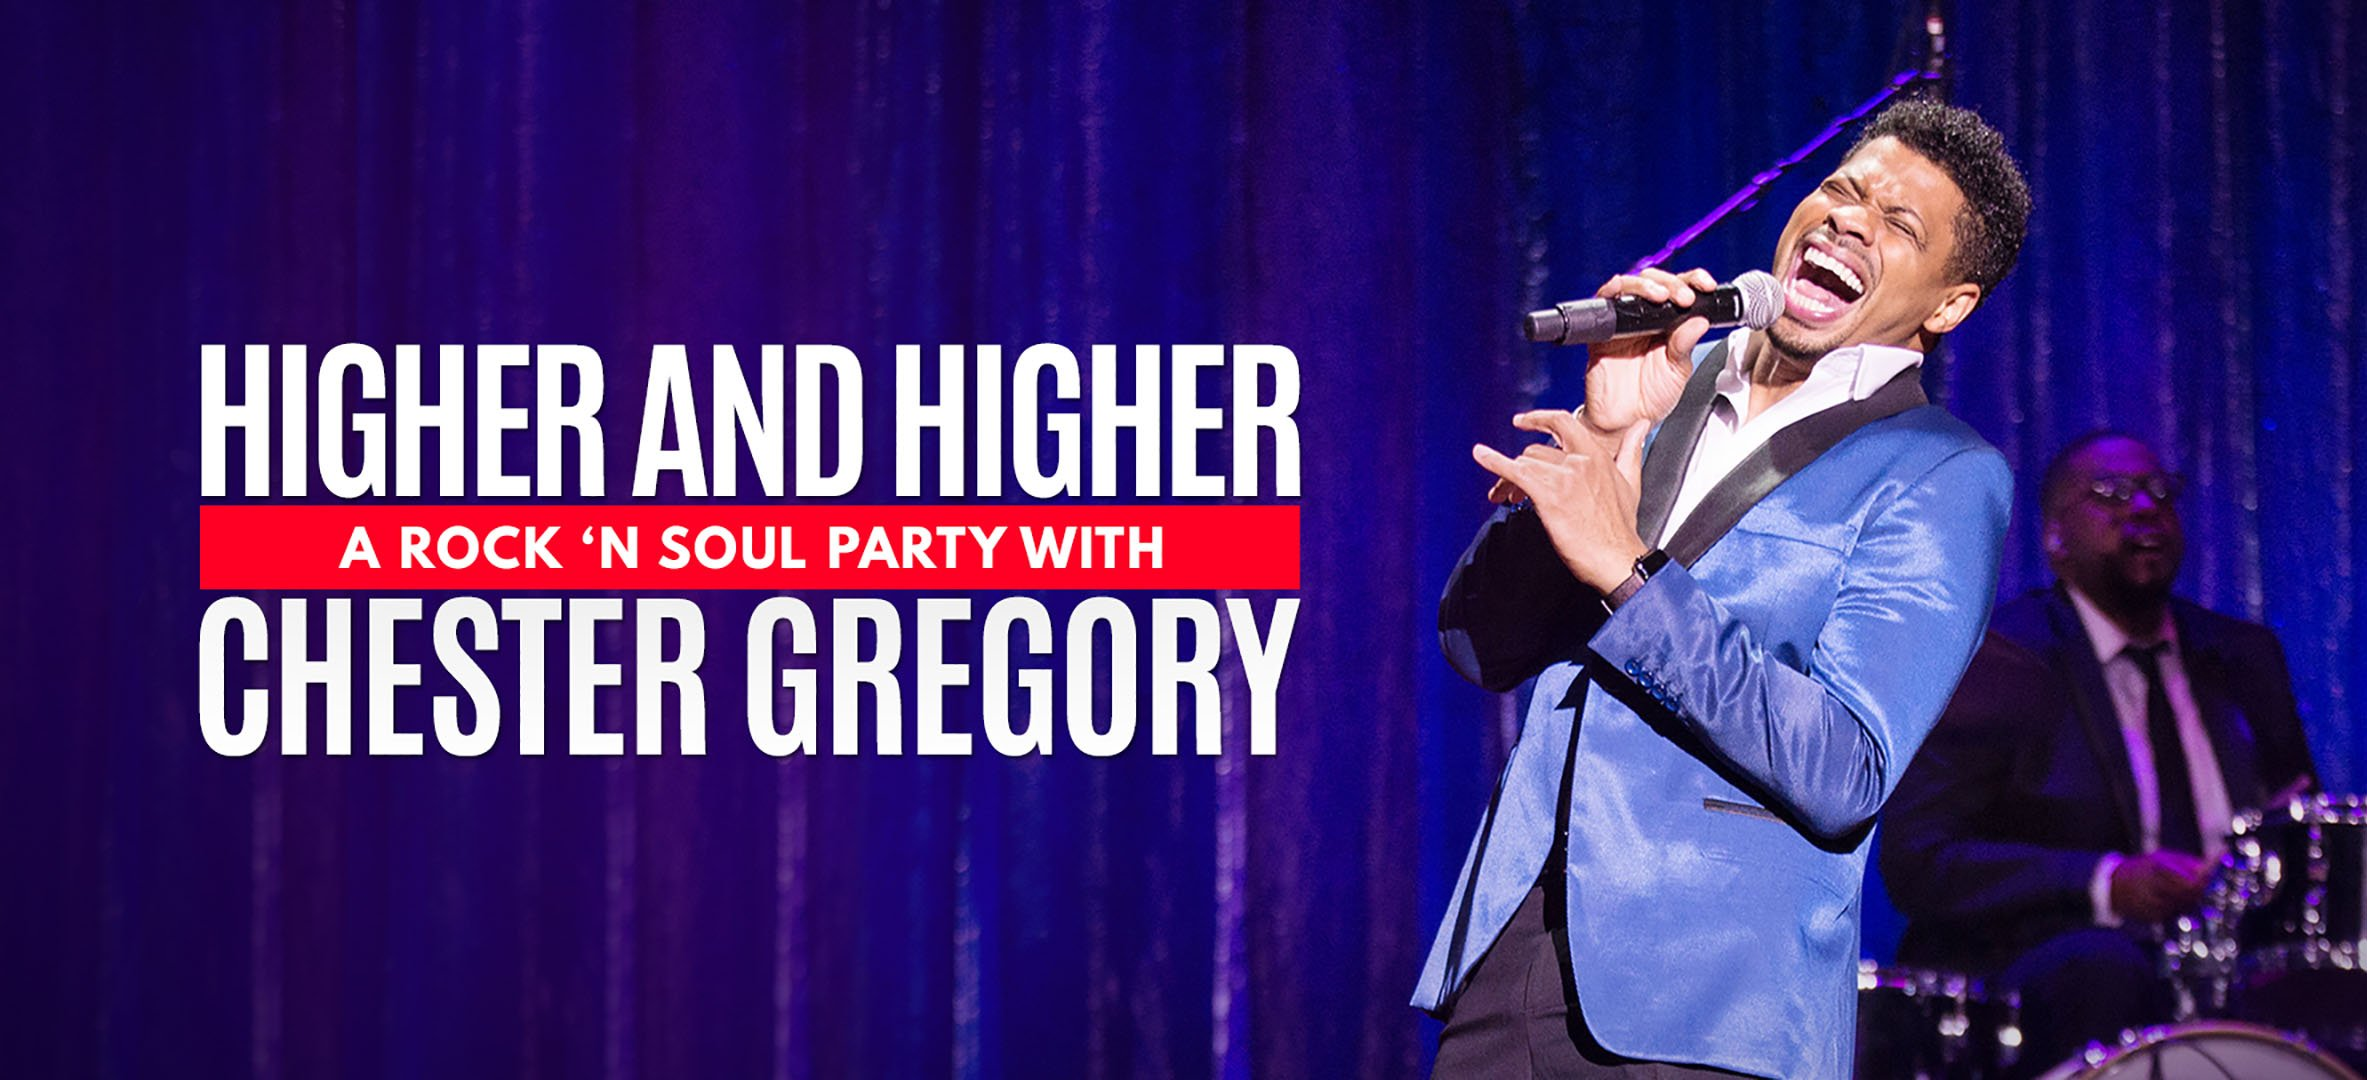 HIGHER AND HIGHER: A ROCK 'N SOUL PARTY WITH CHESTER GREGORY